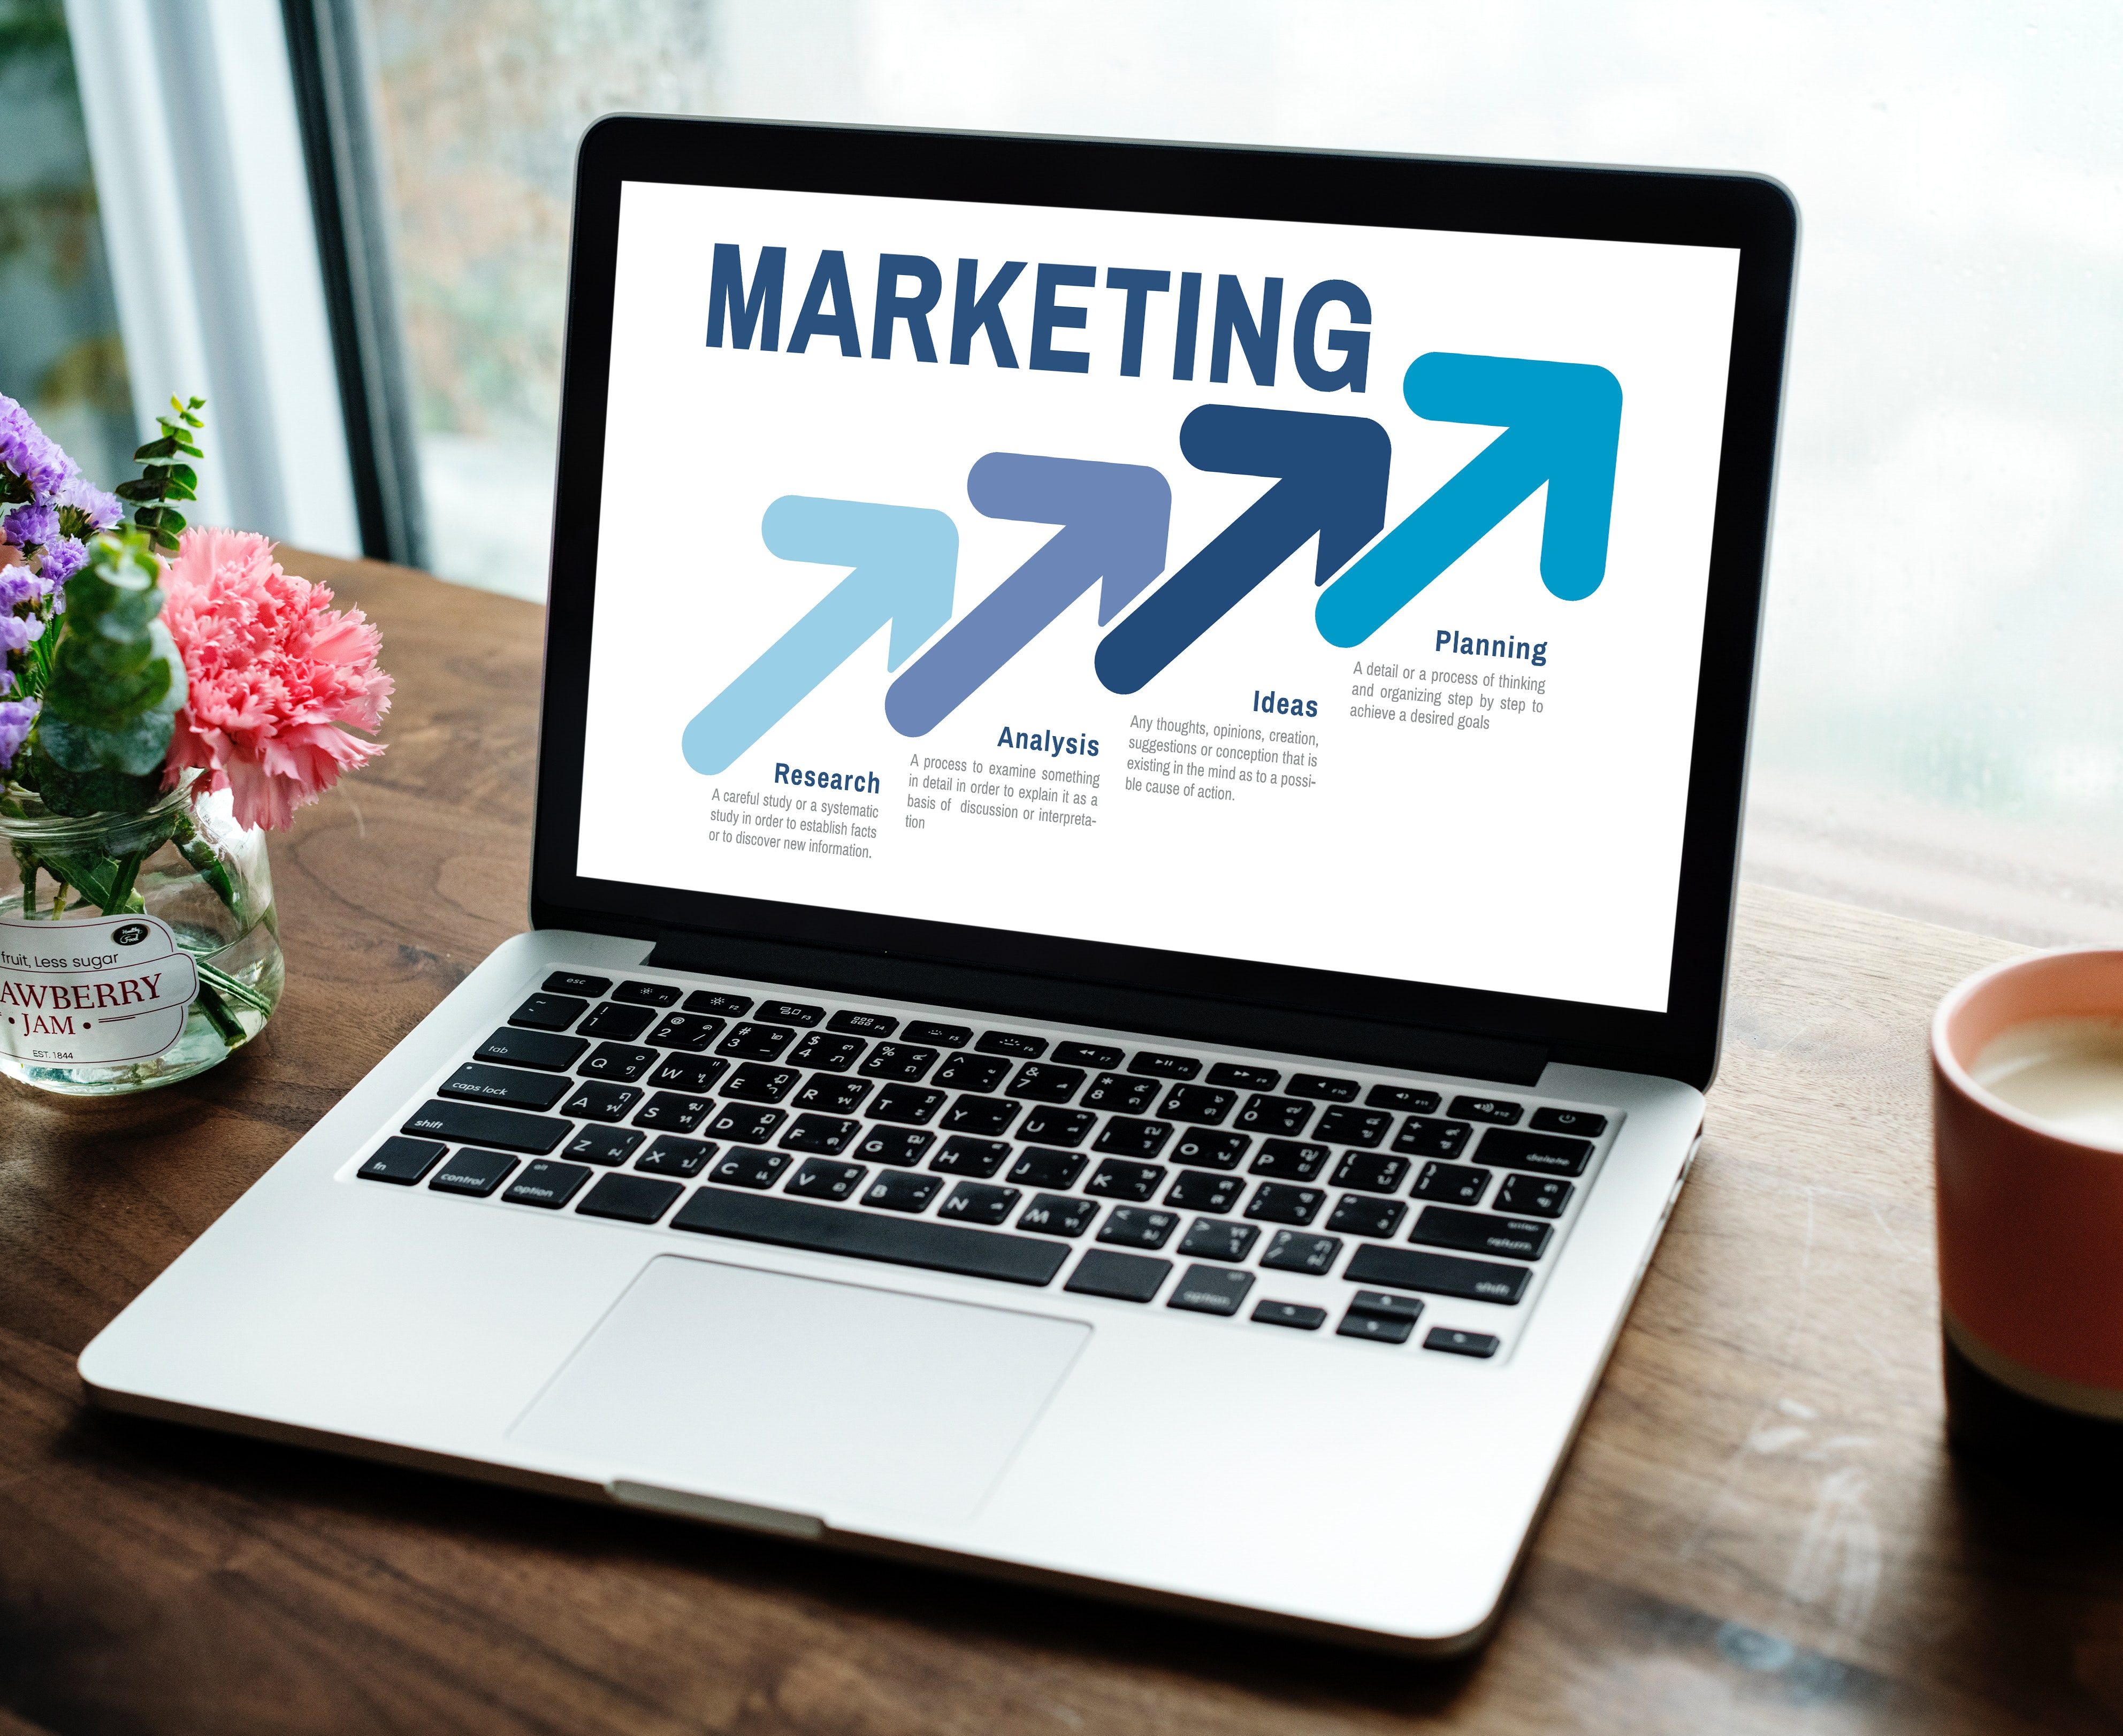 Clear marketing plan outline